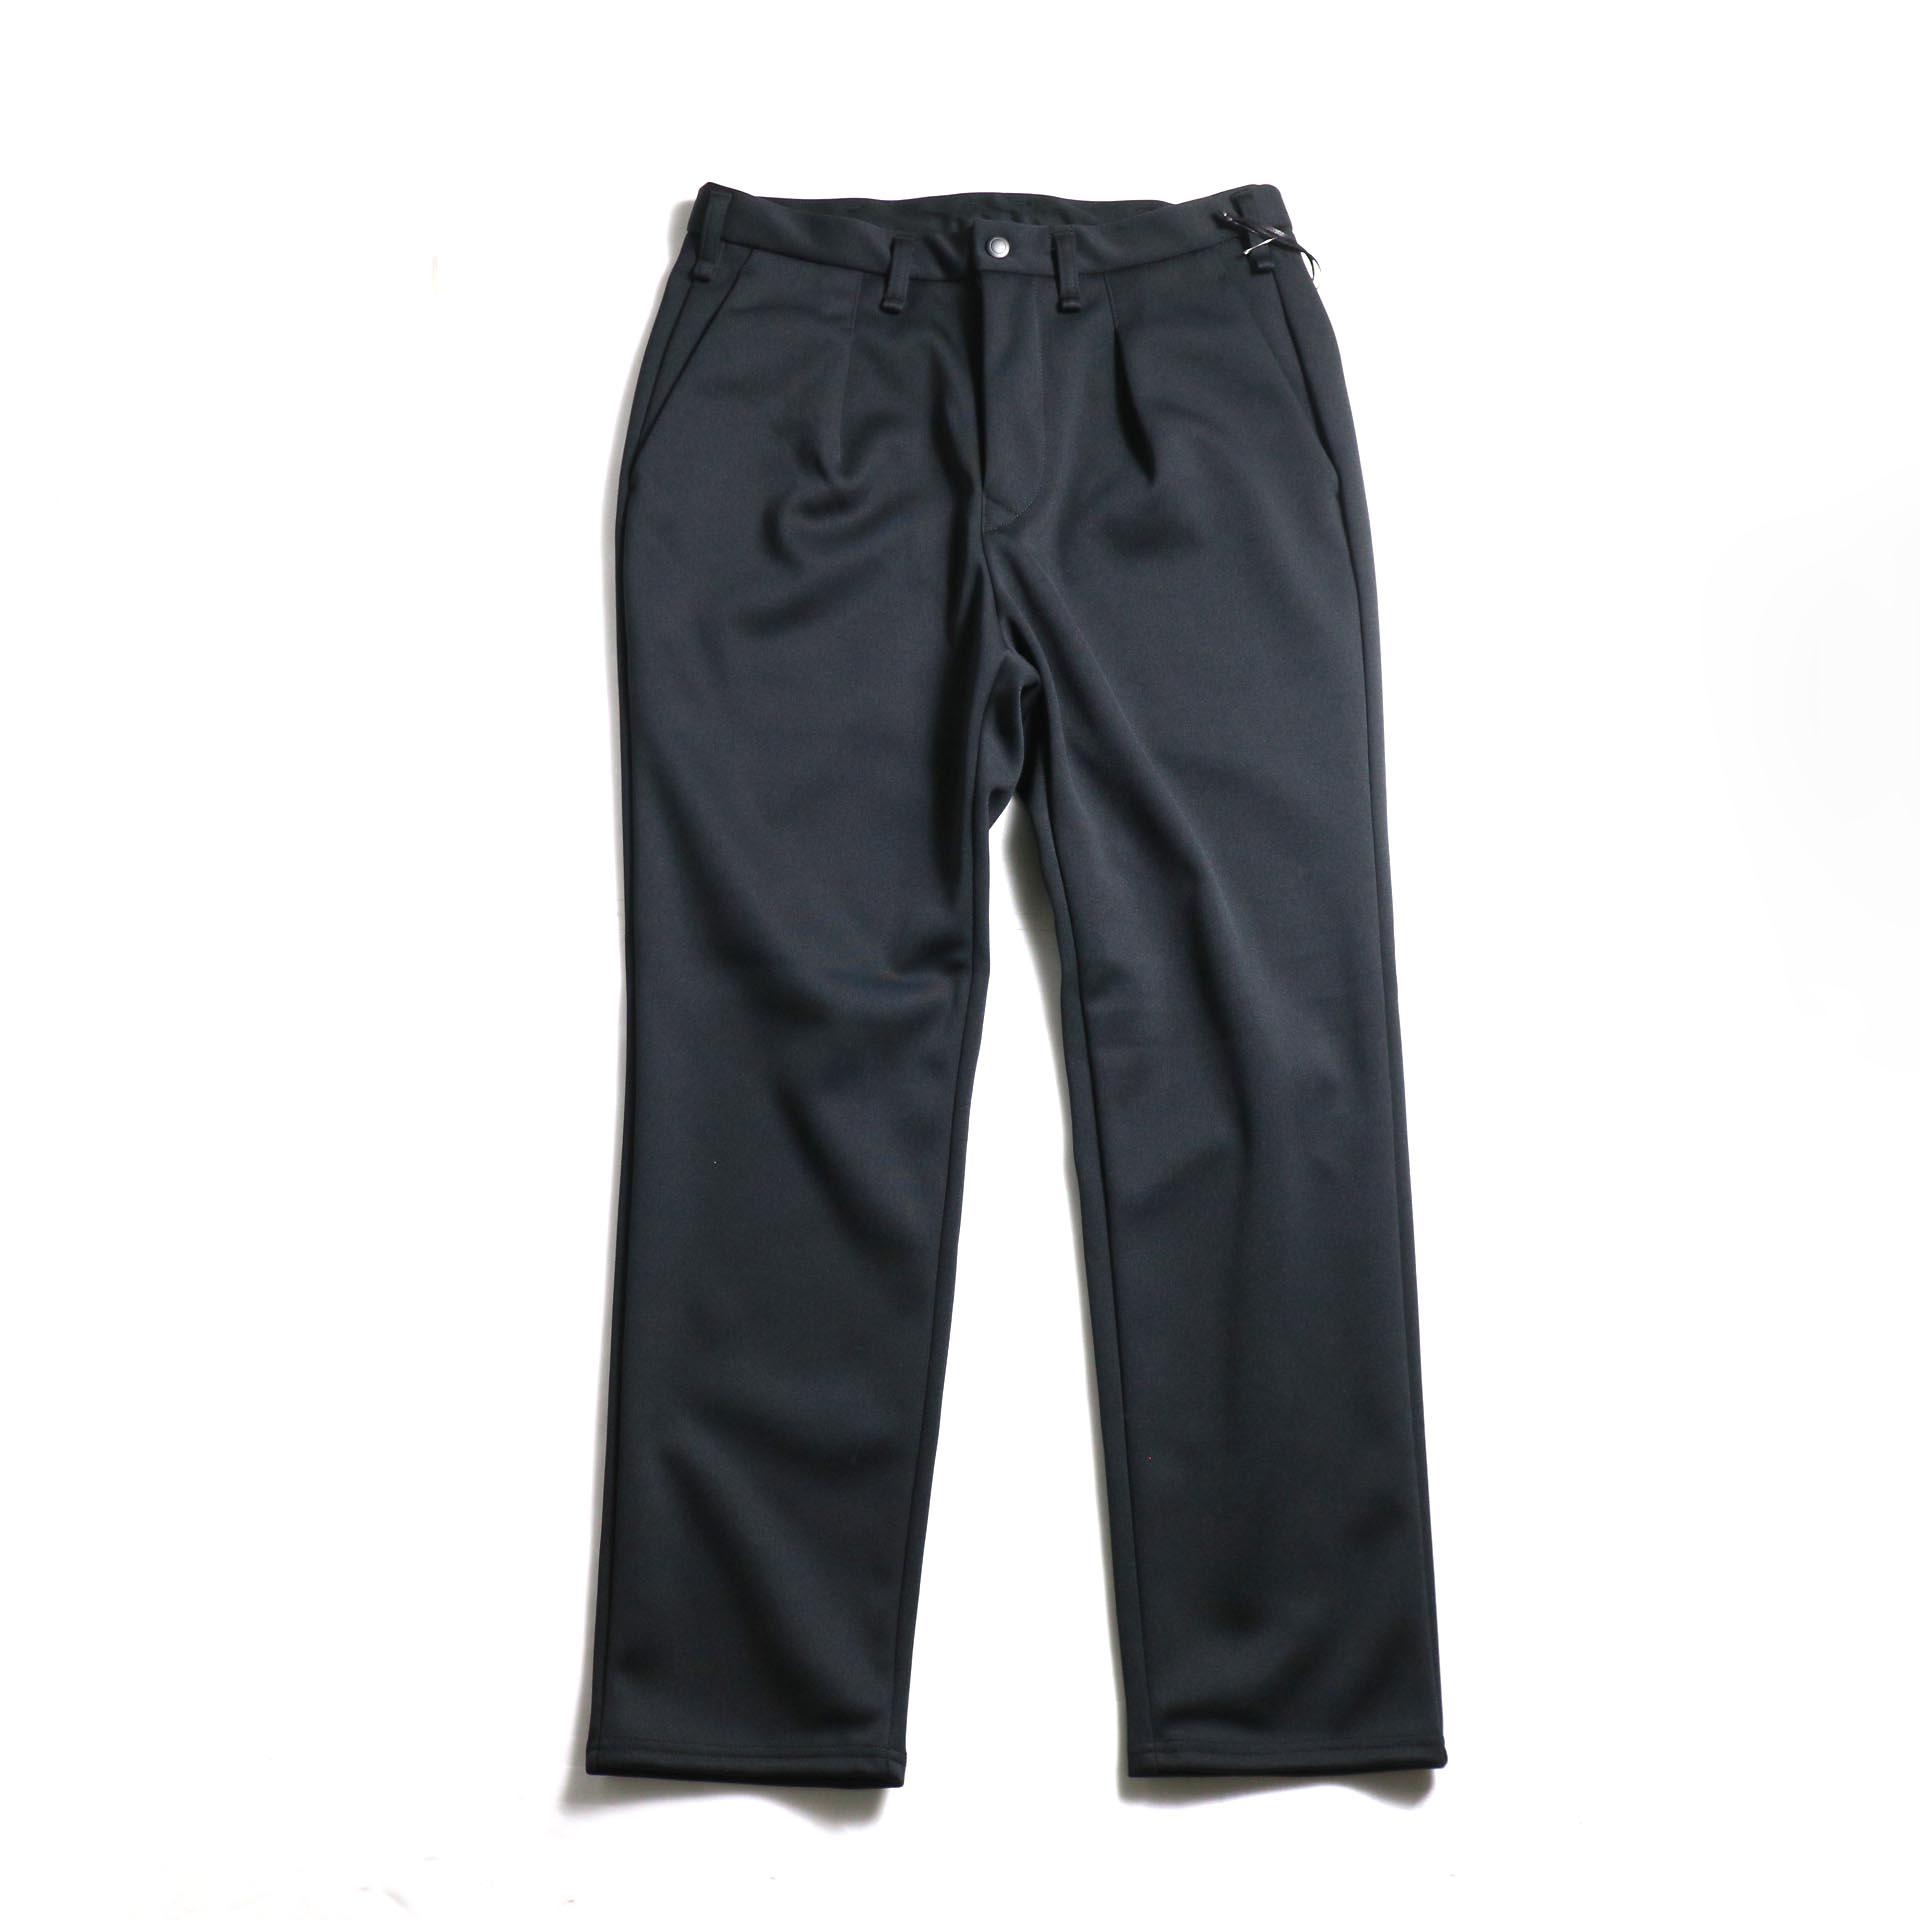 CURLY / TRACK TROUSERS (Black)